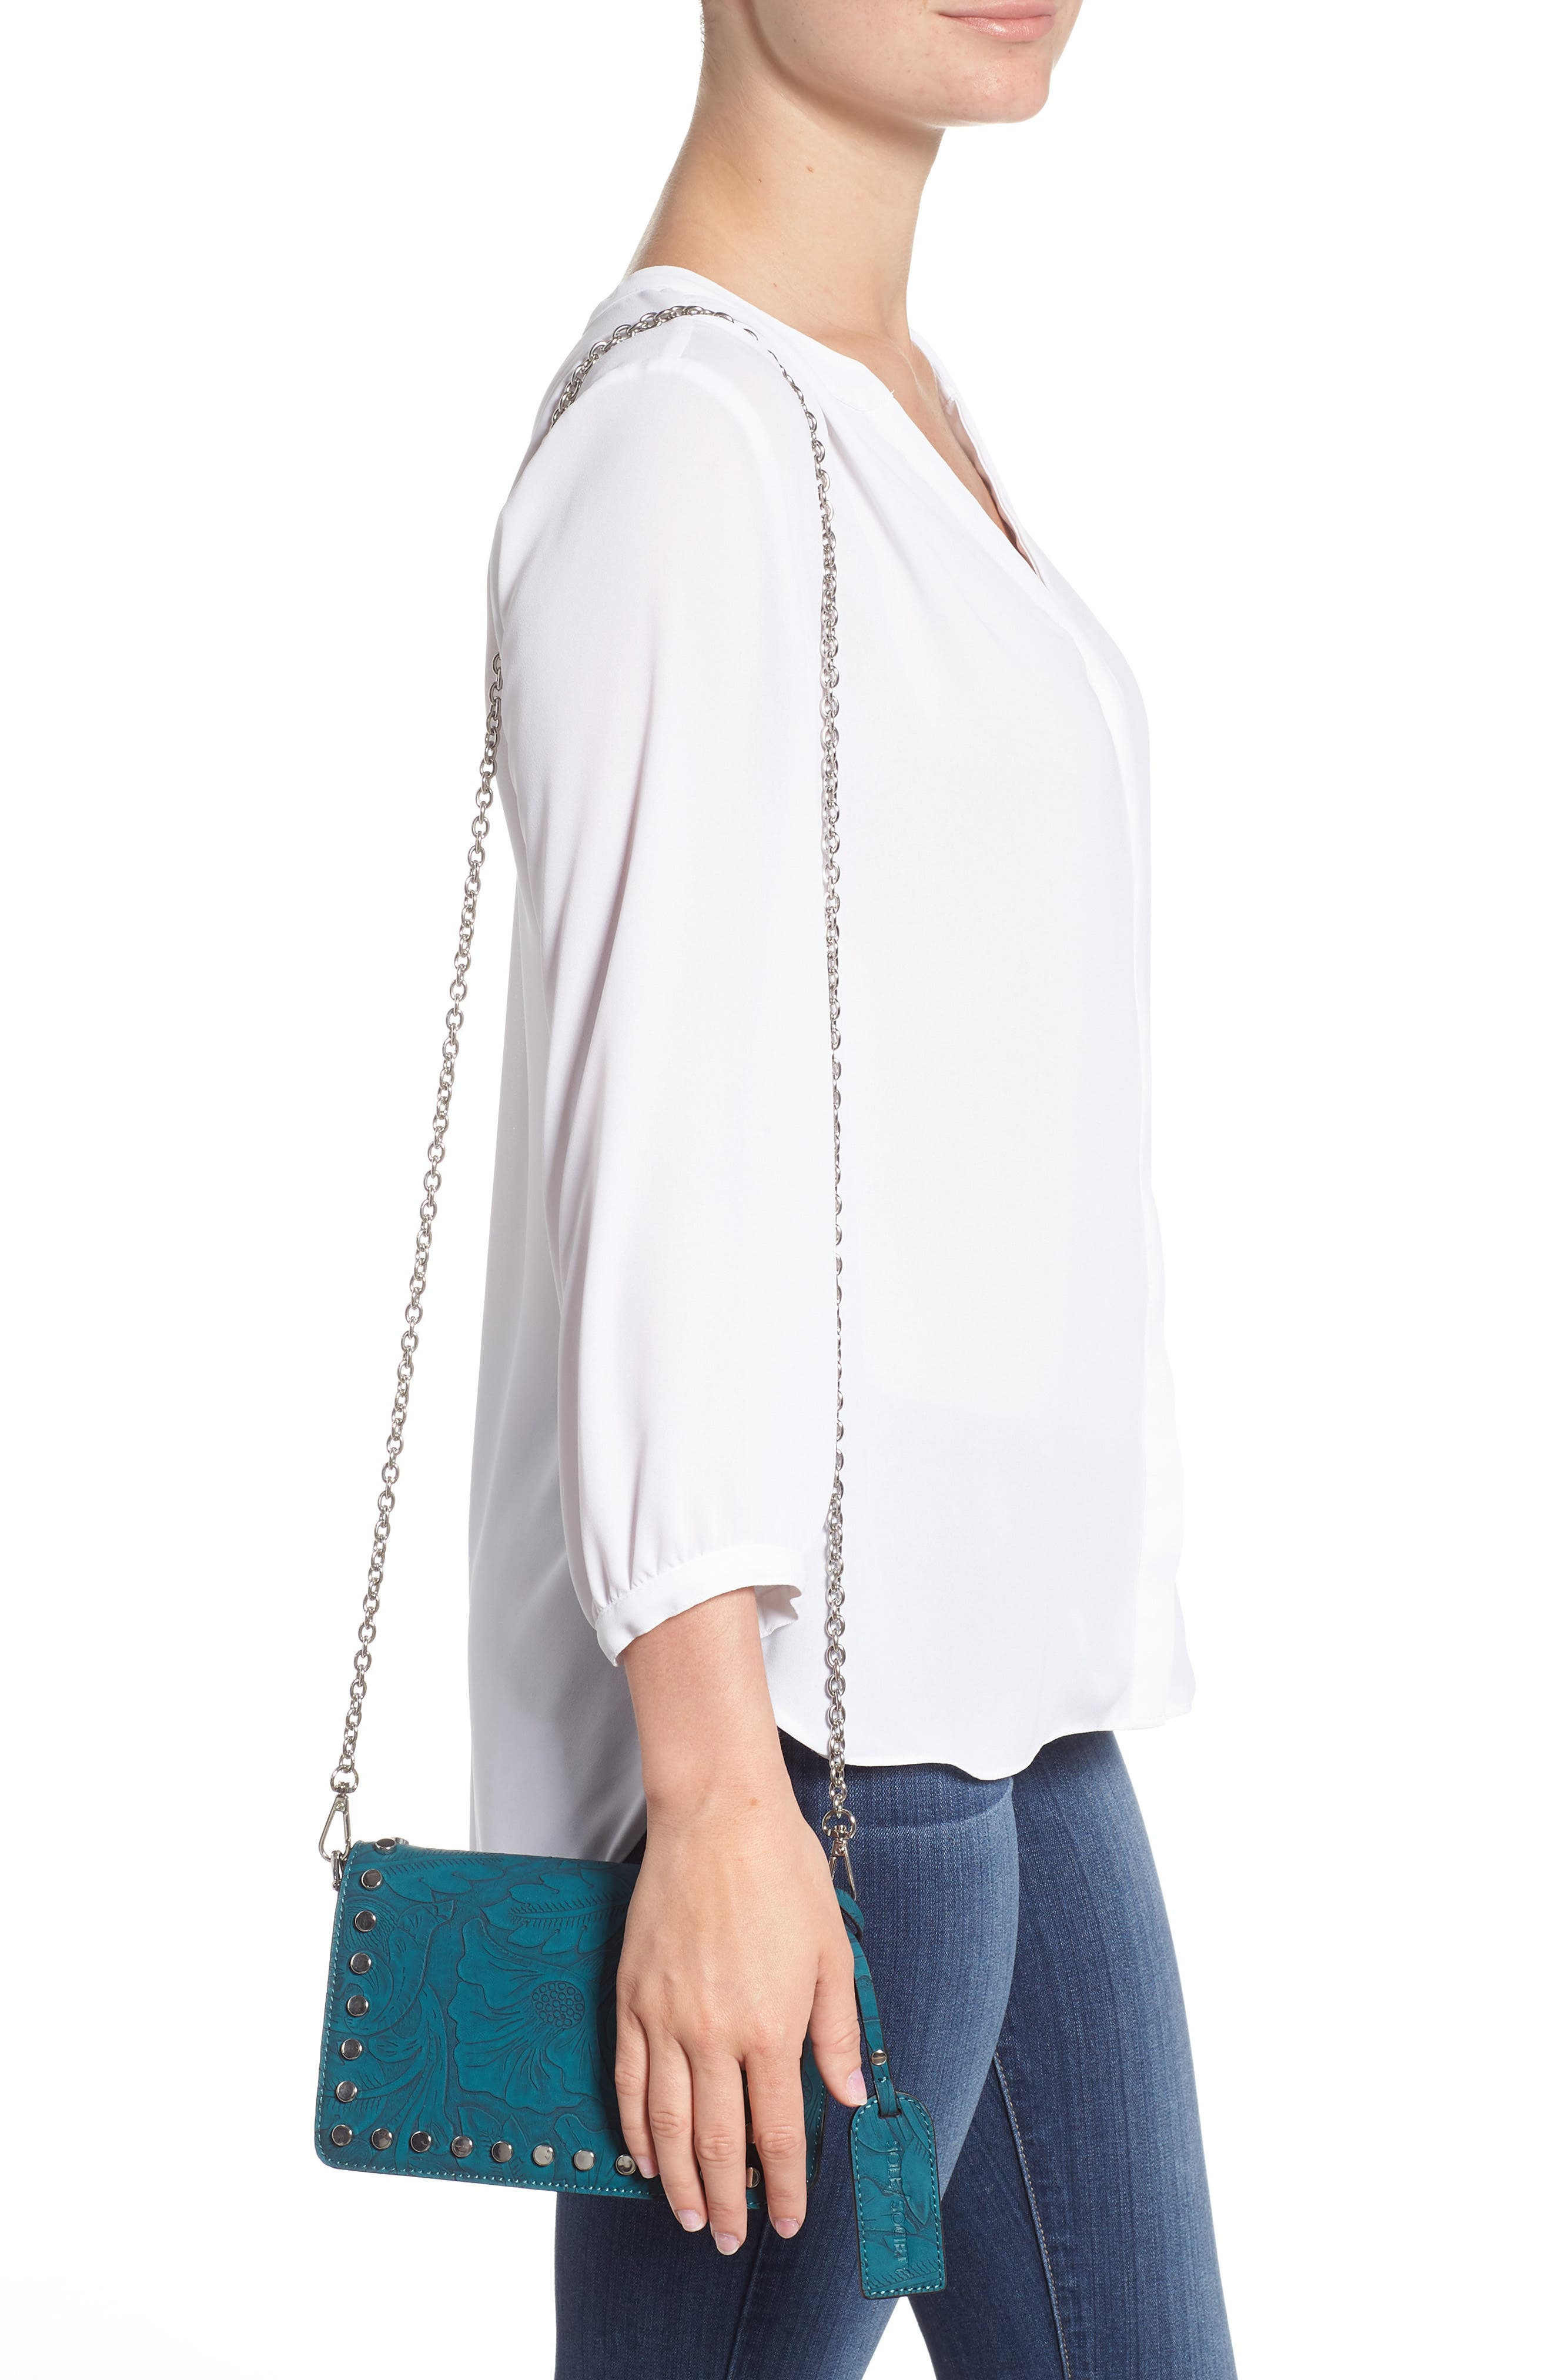 Hawna Faux Leather Crossbody,                             Alternate thumbnail 2, color,                             Teal